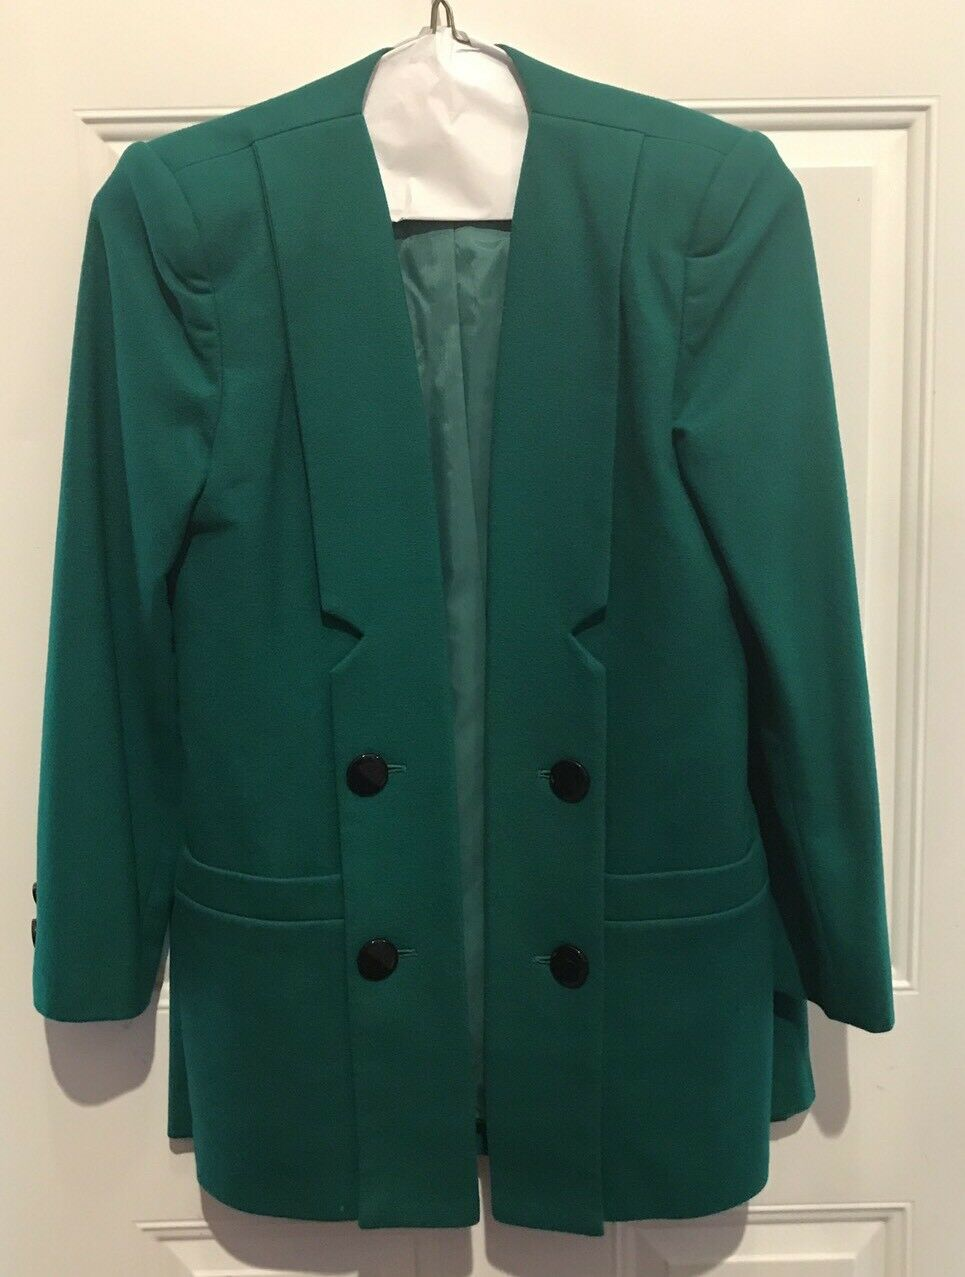 VINTAGE SASSON WOMENS TWO PC. Green WOOL BLEND SKIRT SUIT SZ 6 EUC 80's Glam